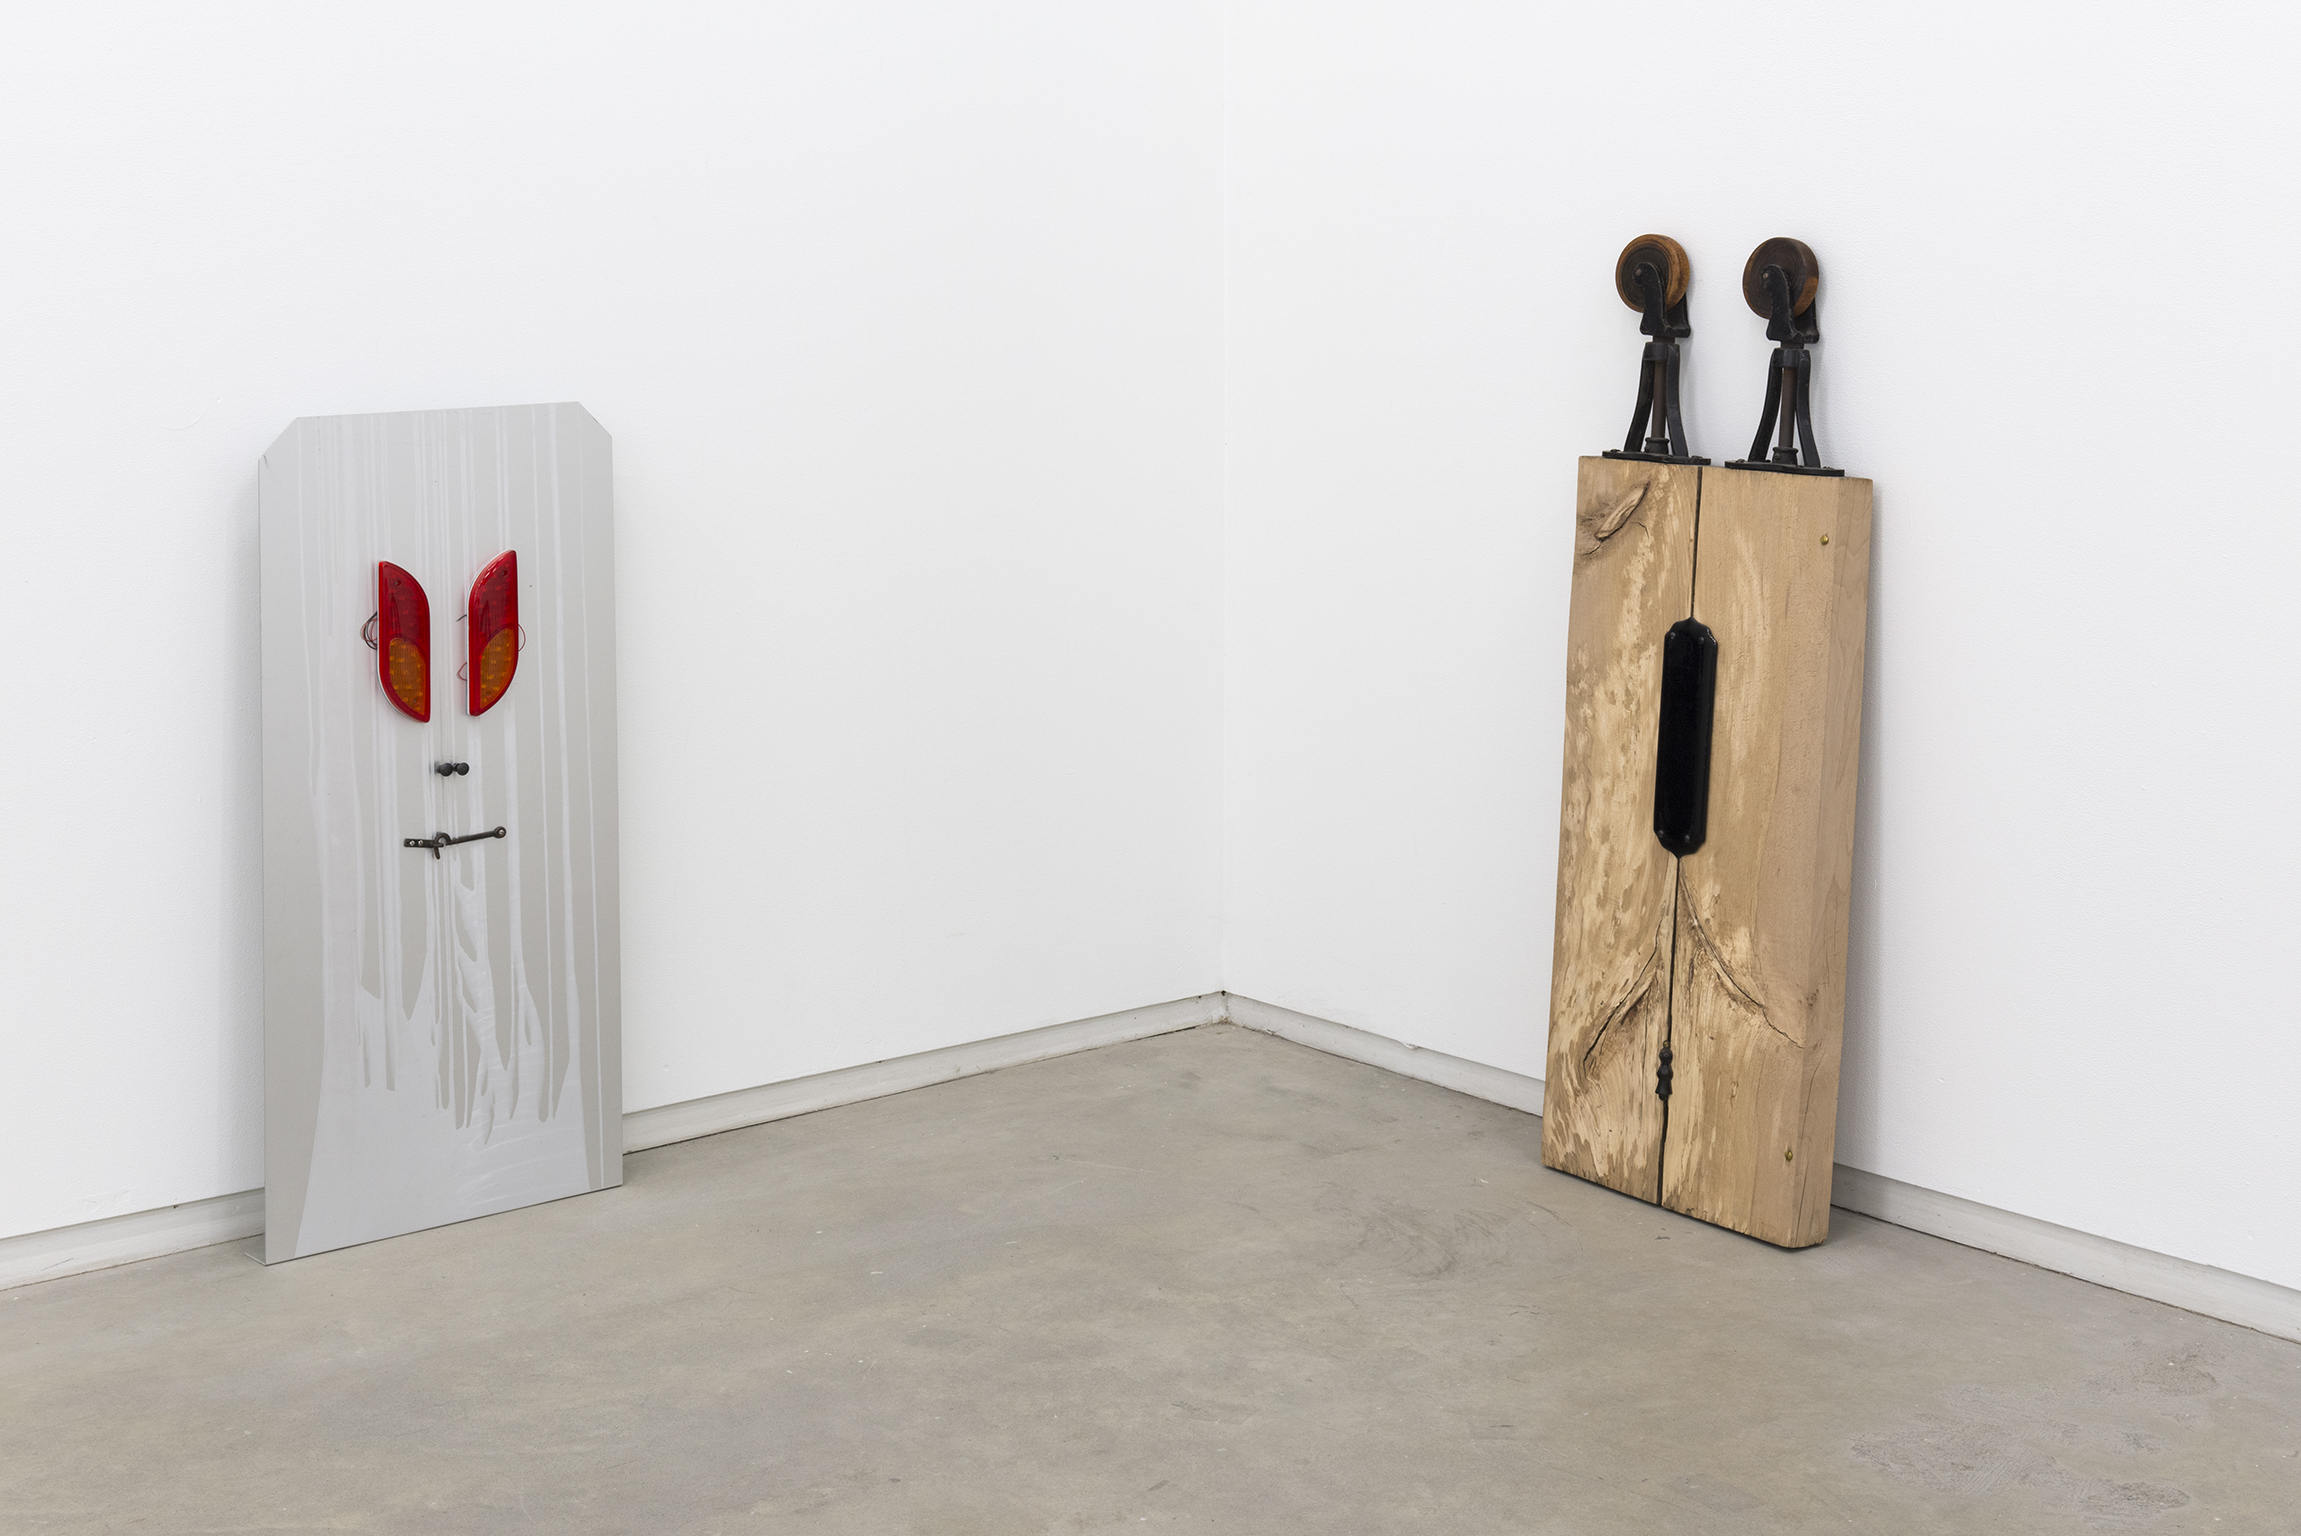 Christina Mackie, ​Trestle Person II​, 2012, ​aluminum, plastic, steel​, 37 x 17 x 5 in. (94 x 43 x 12 cm​), and ​Trestle Person III​, 2012, cast iron, wood, ceramics, brass, 46 x 16 x 3 in. (116 x 39 x 6 cm)​ by